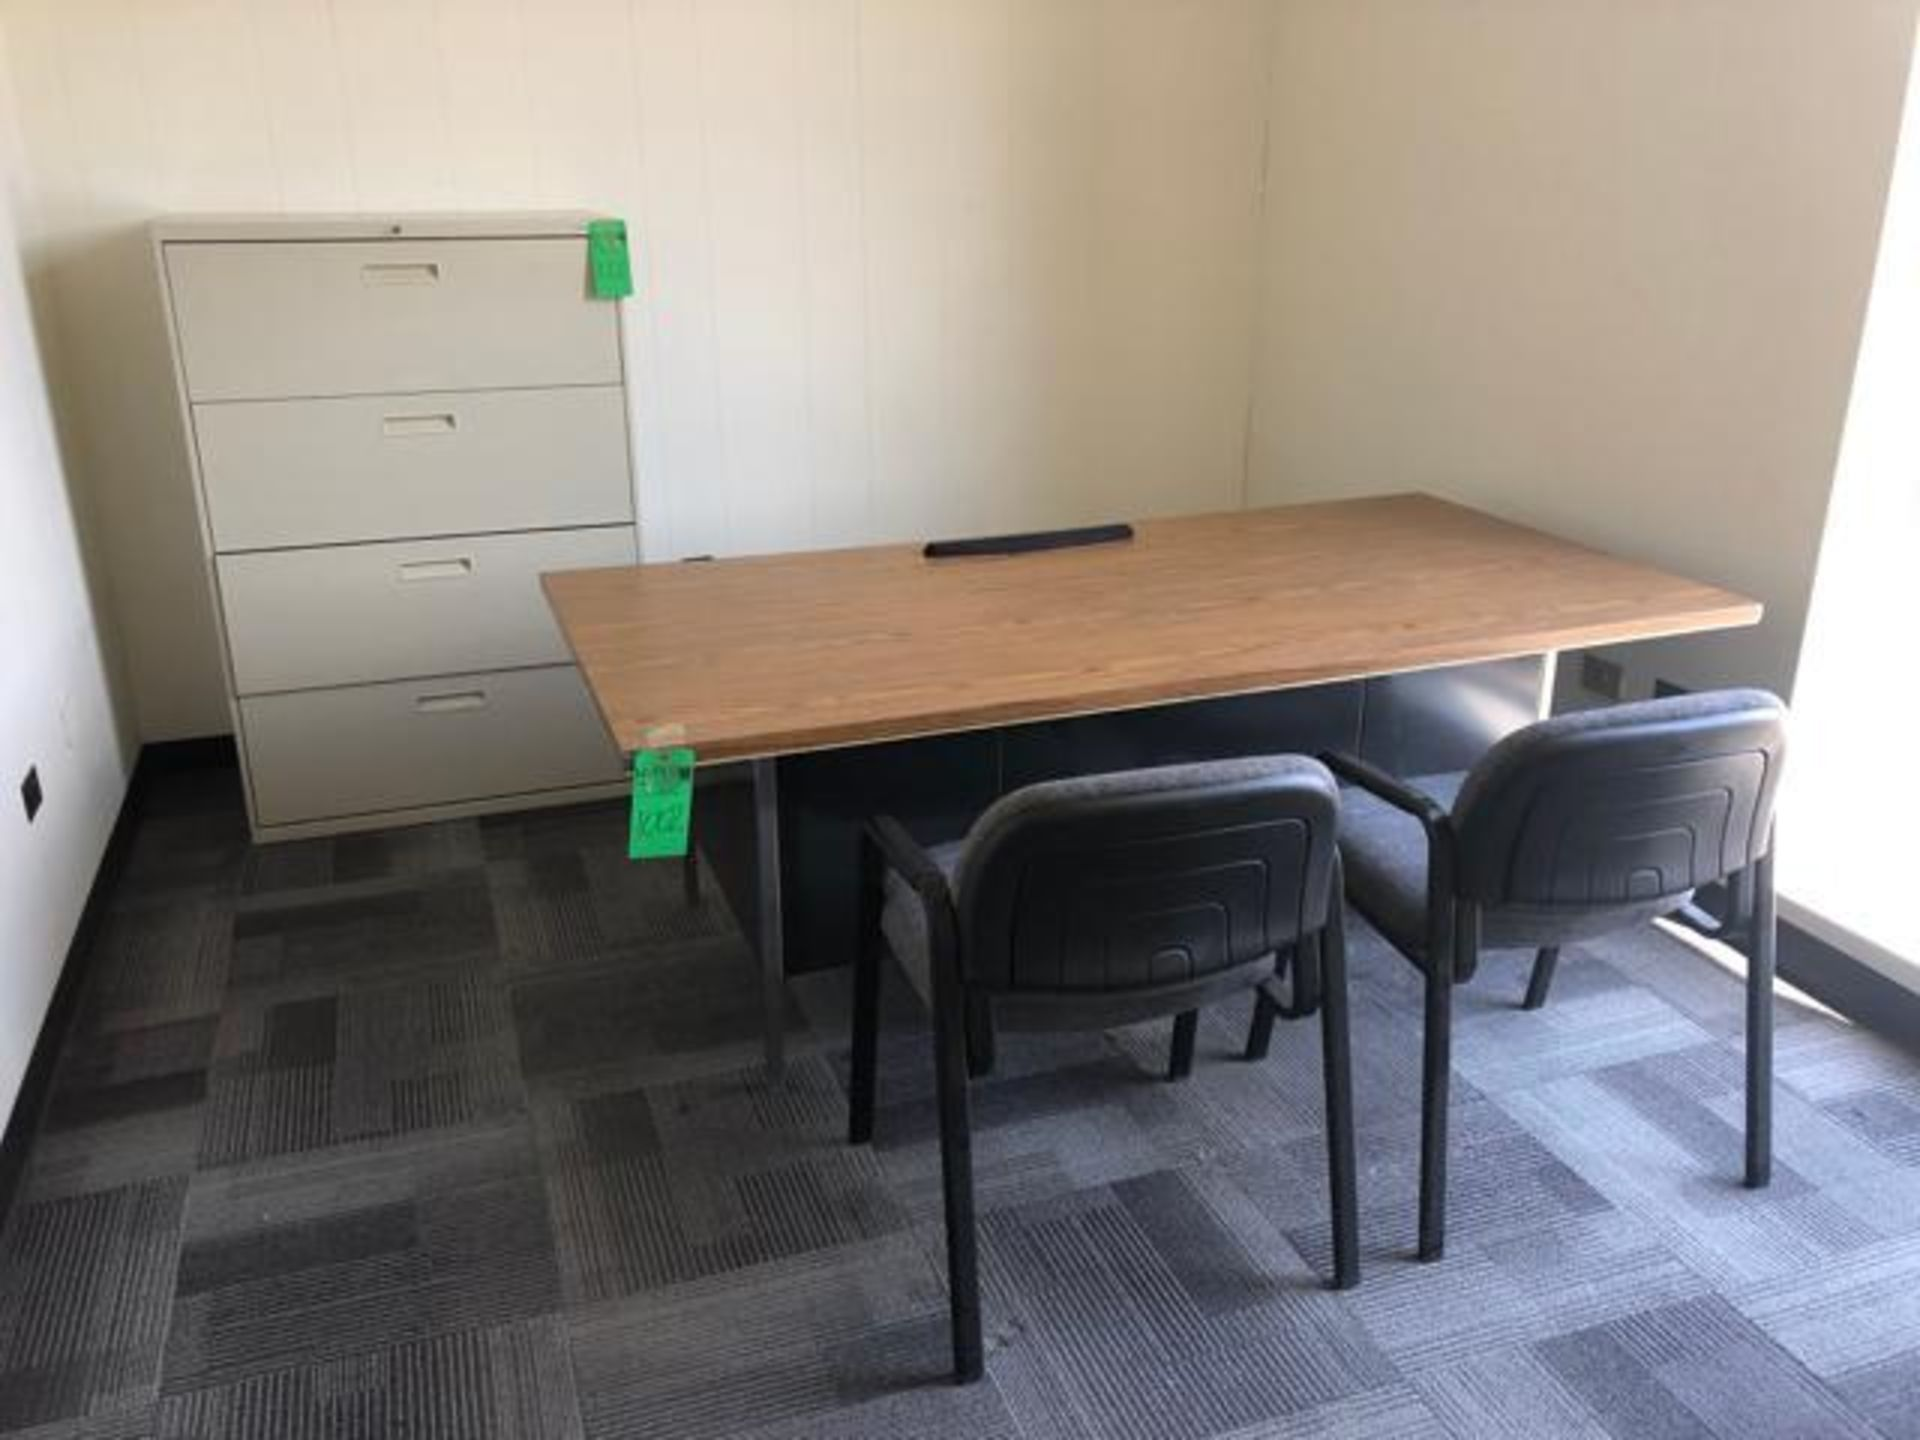 """Lot 1002 - Office Furniture,To include: (1) 2 Drawer Wood Desk with Metal Base 29"""" x 78""""x 29""""; (1) 4 Drawer Met"""